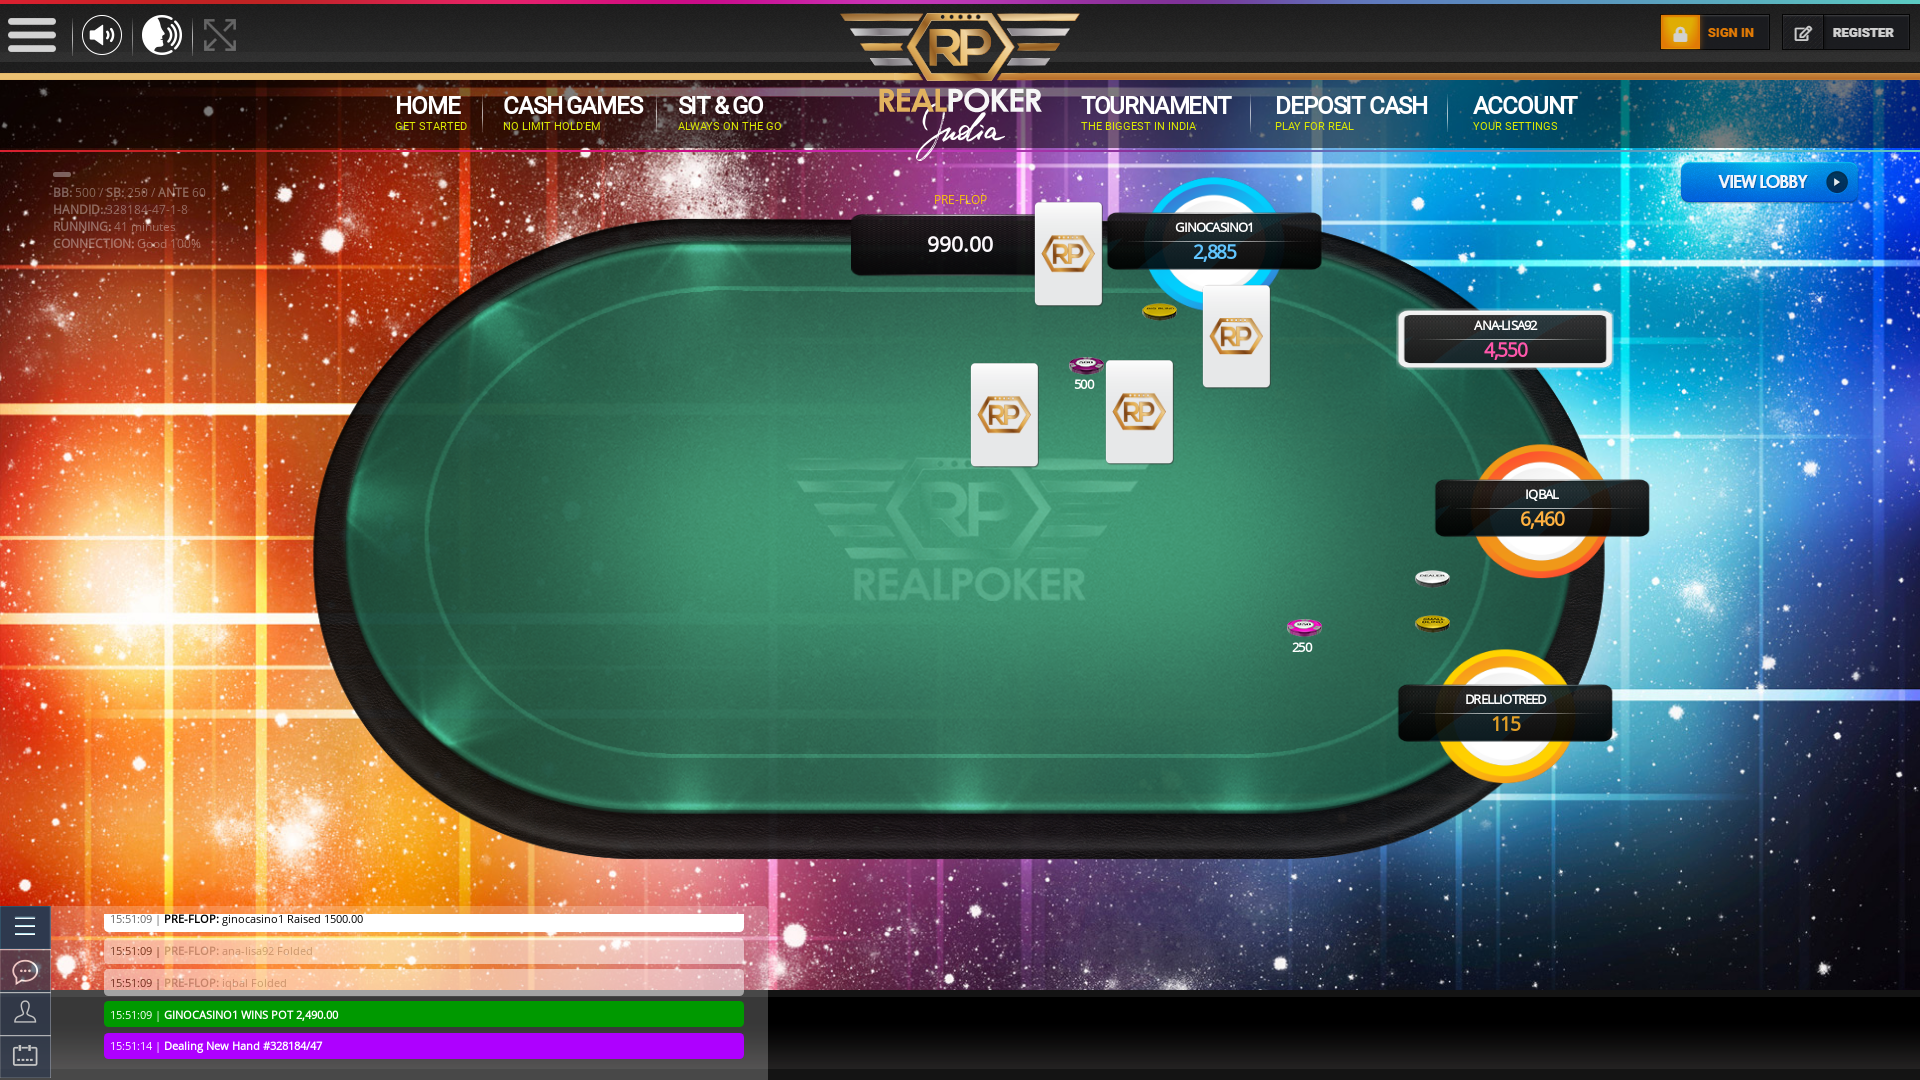 Real poker 10 player table in the 4 match